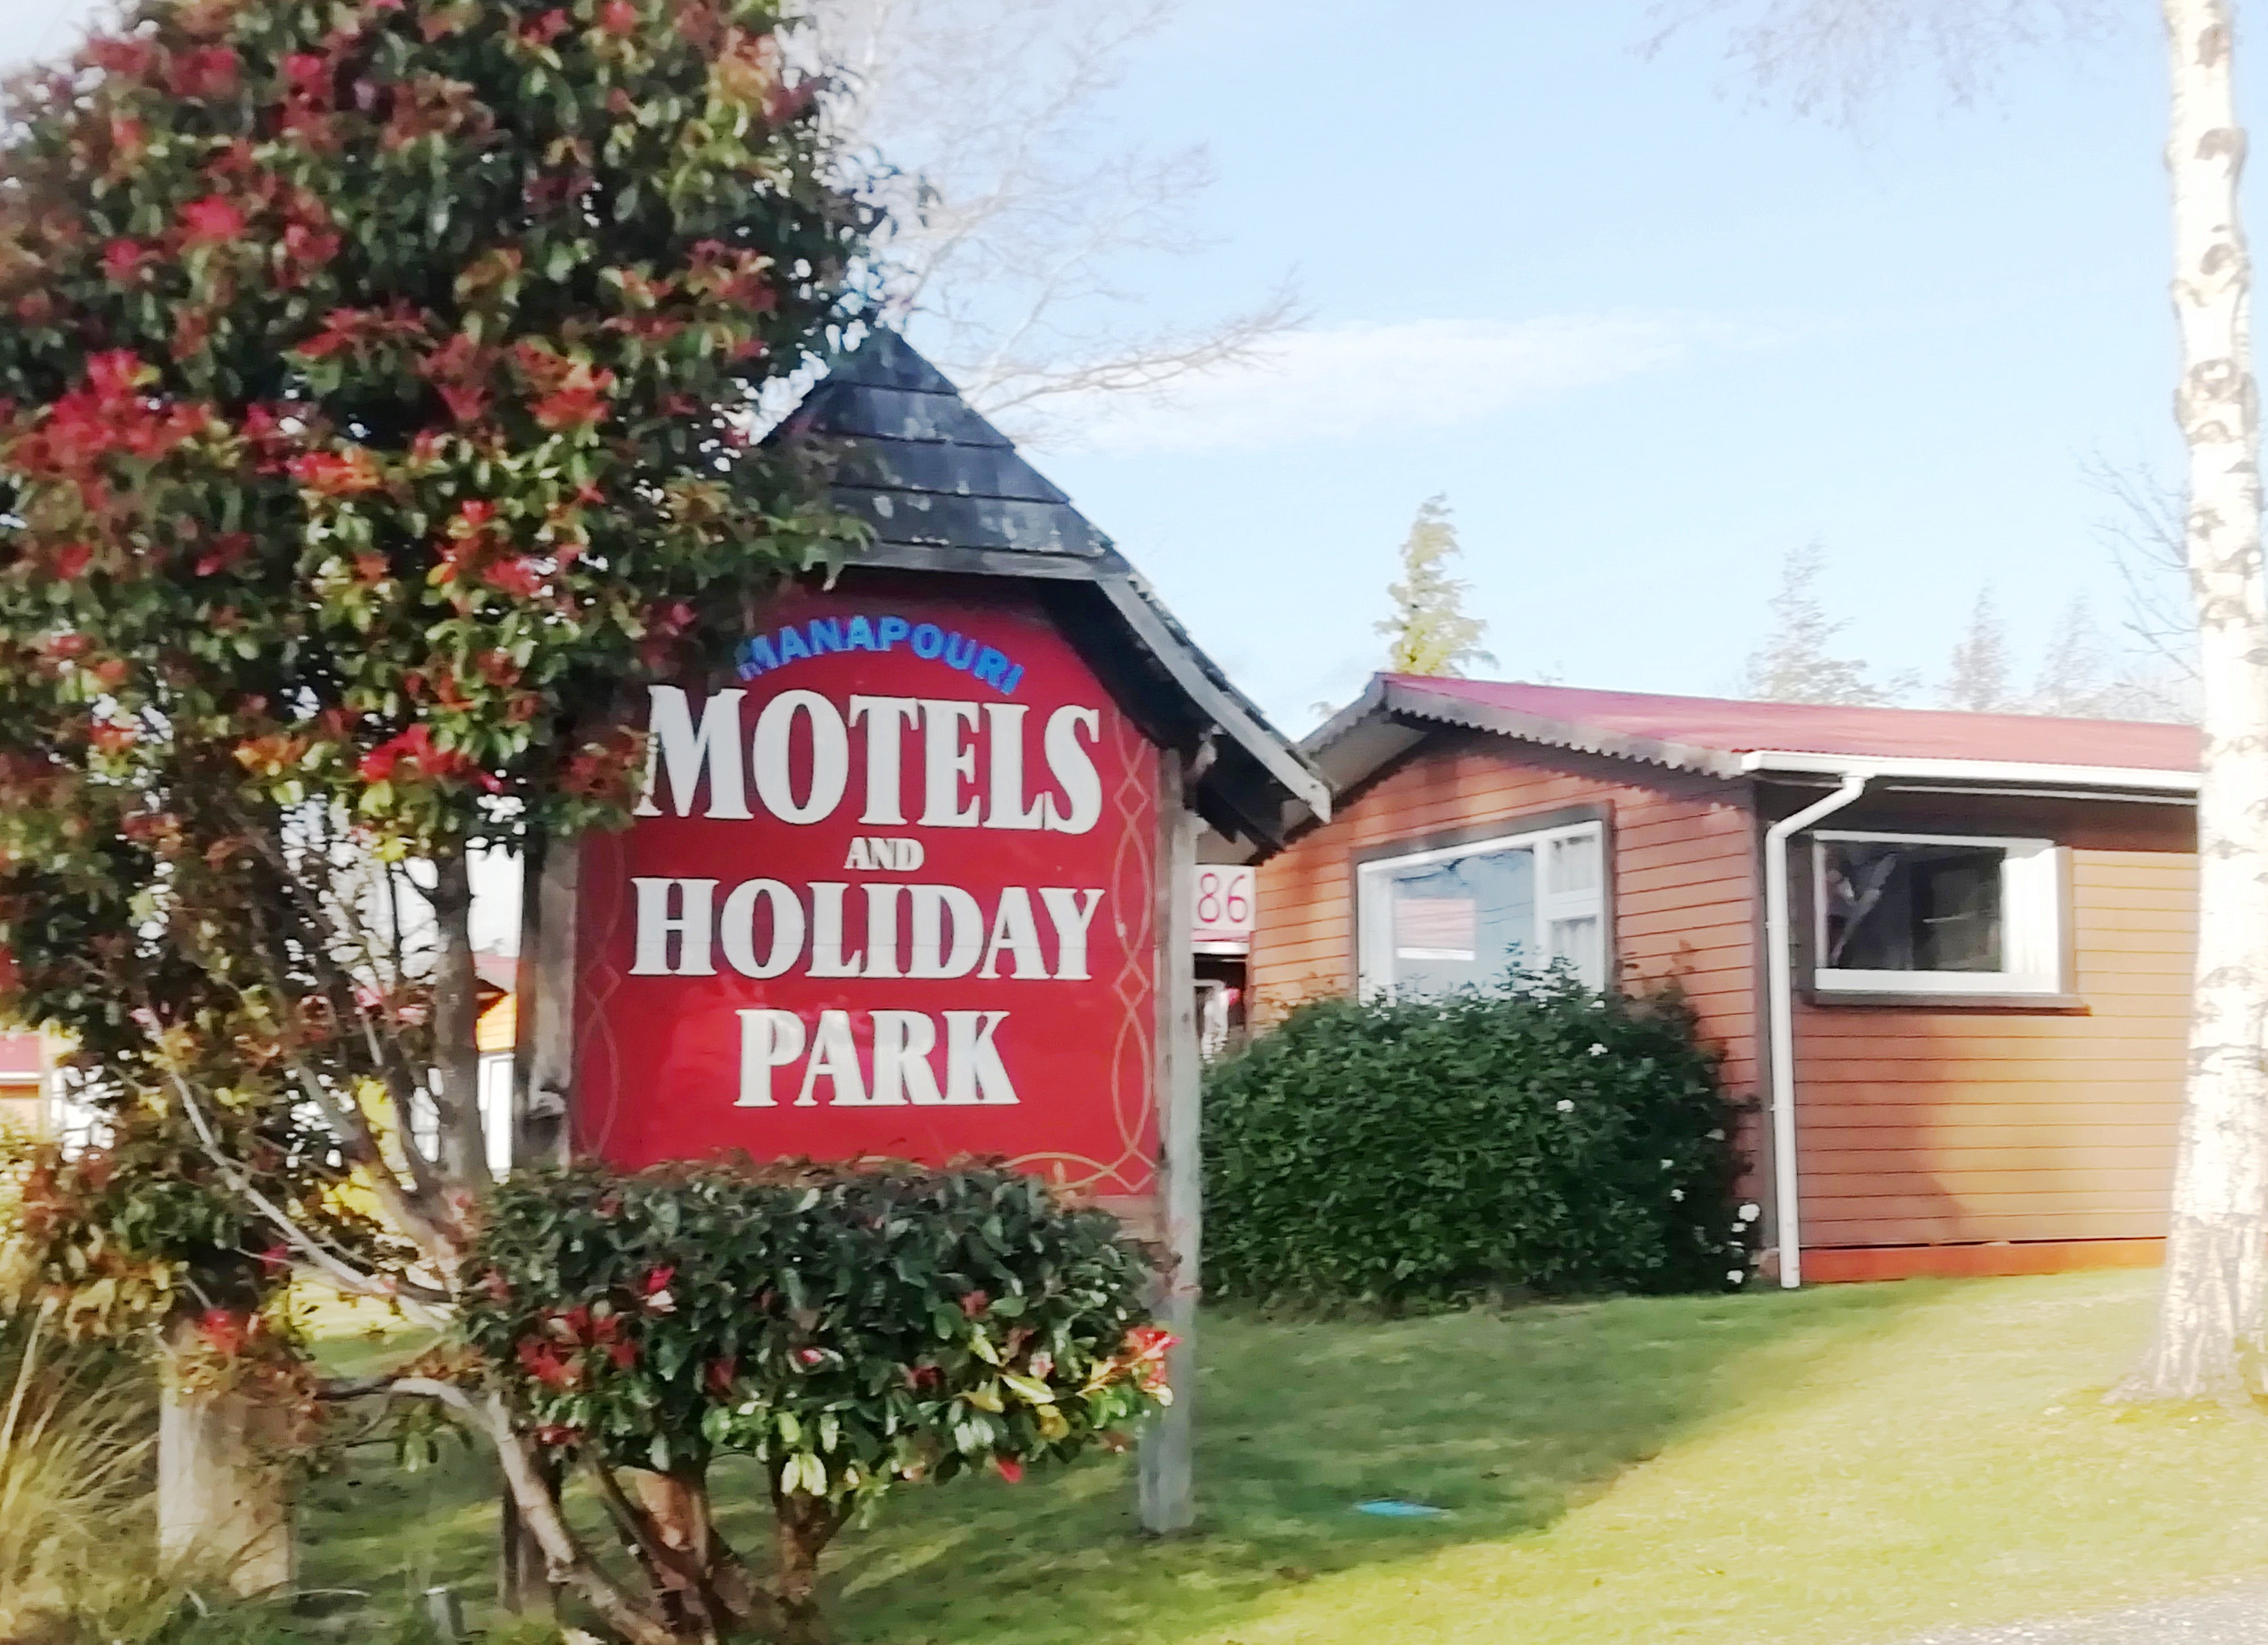 The sign for the Manapōuri Motels and Holiday Park